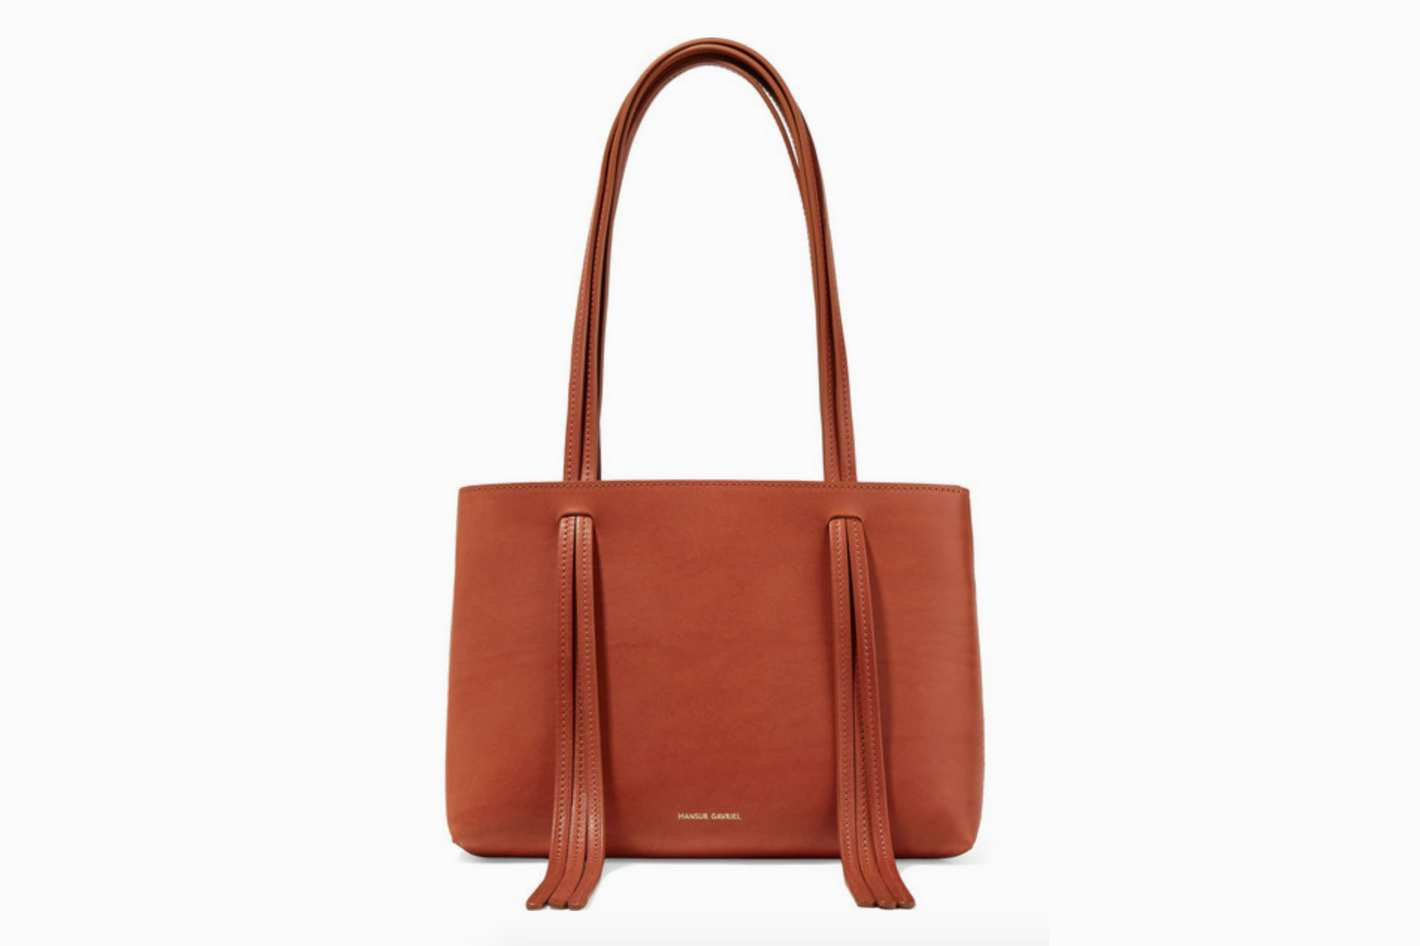 Mansur Gavriel East West Fringed Leather Tote